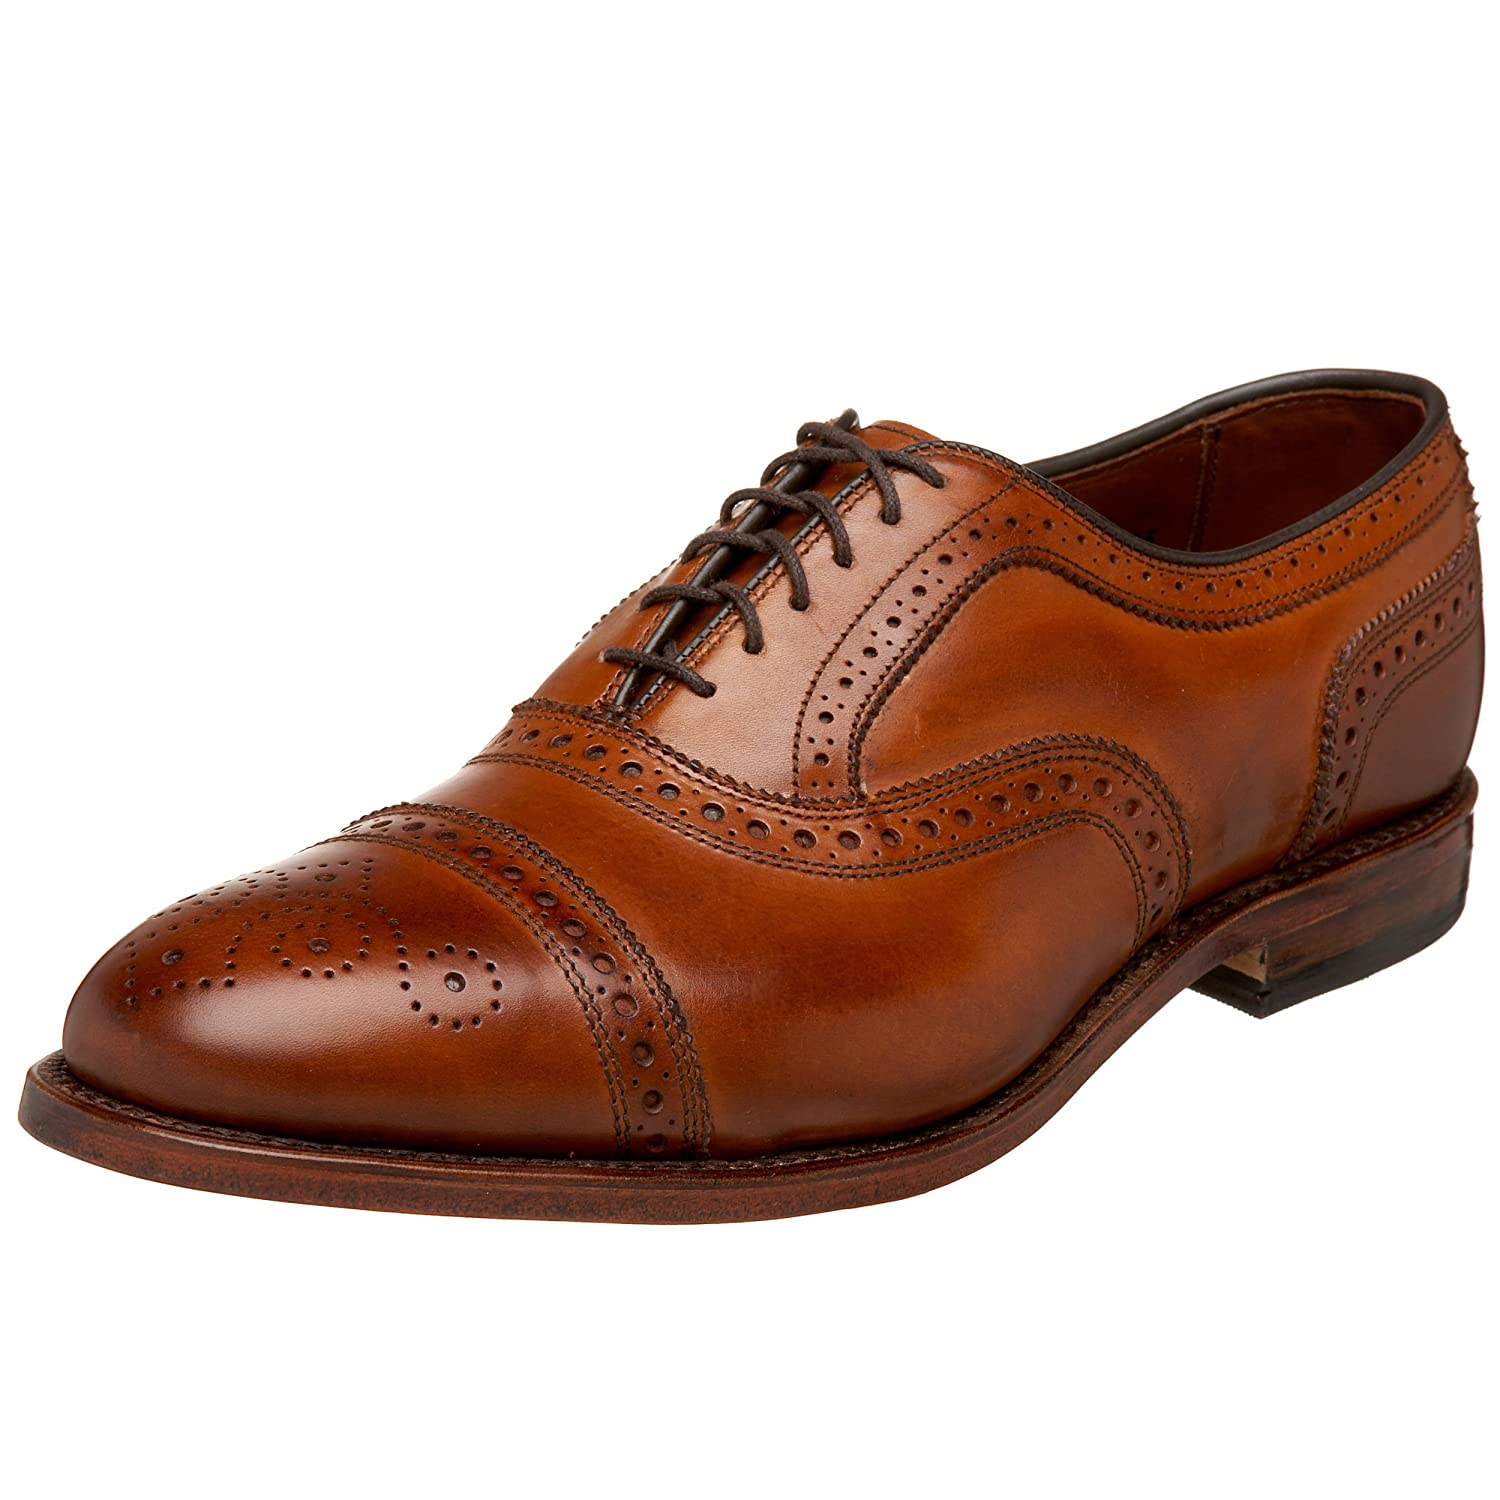 Jos. A. Bank offers the Cole Haan Men's Beckett Center Seam Oxford Shoes in British Tan for $Plus, Bank Account Rewards members get free shipping. (Not a member? It's free to join.)That's tied with last month's mention as the lowest price we've seen.